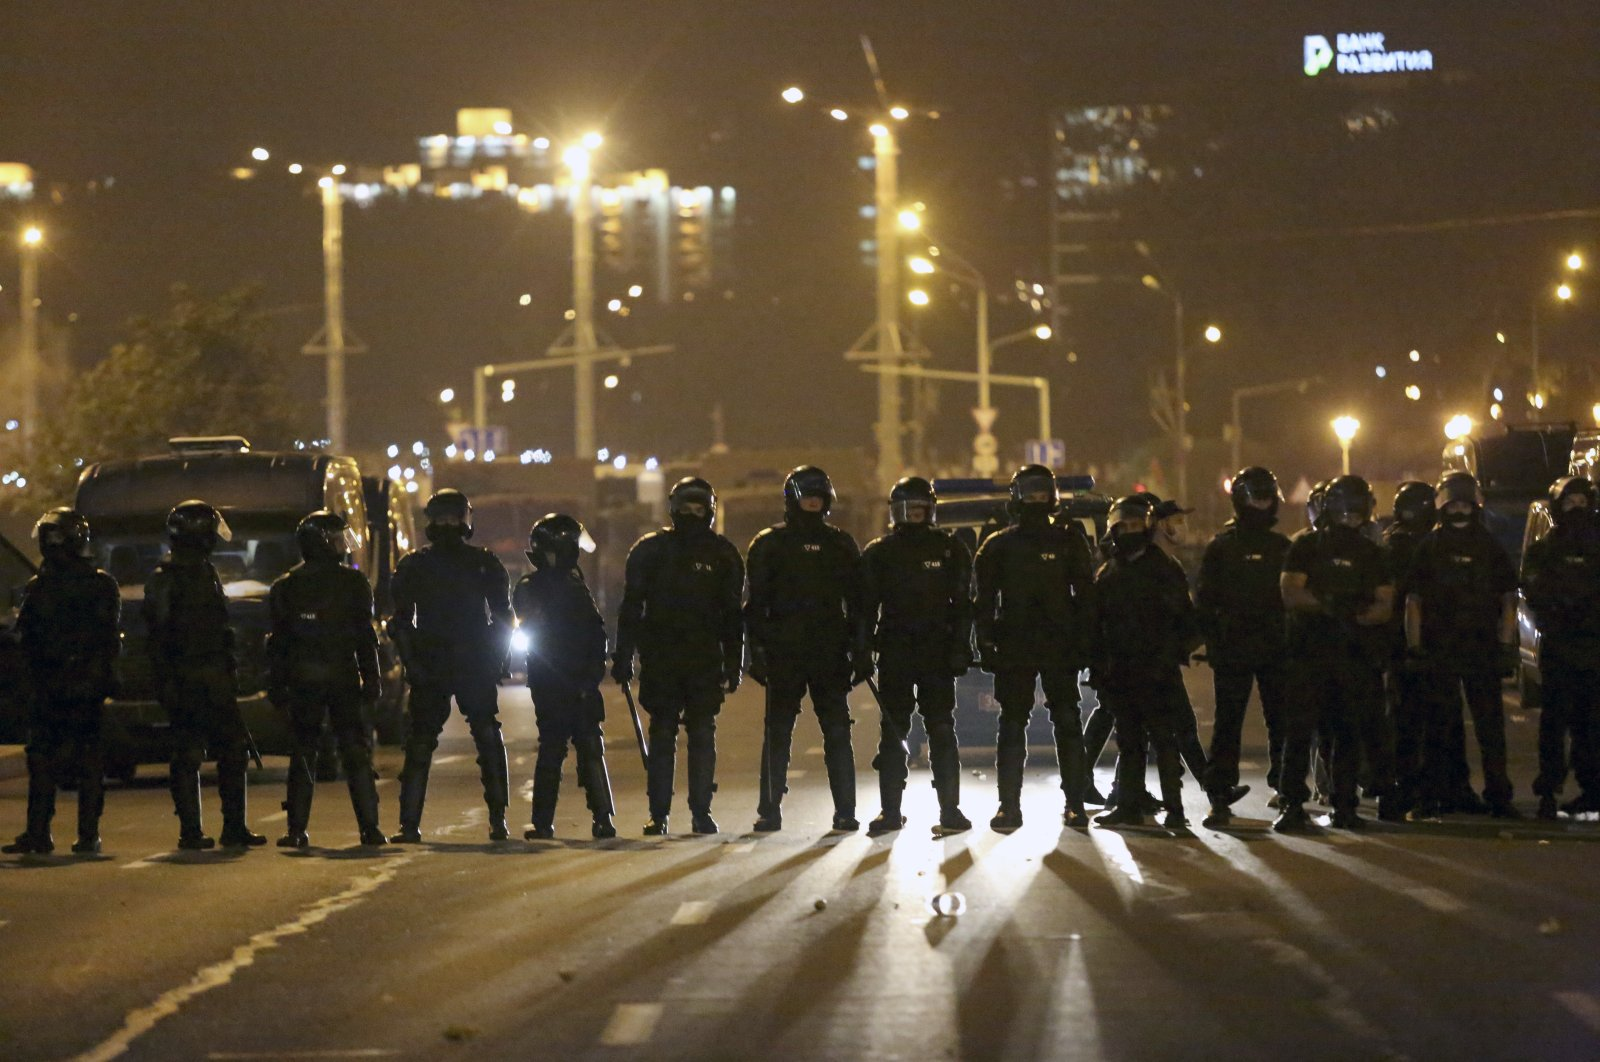 Police block the road to protect against demonstrators after the Belarusian presidential election, Minsk, Belarus, Aug. 9, 2020. (AP Photo)